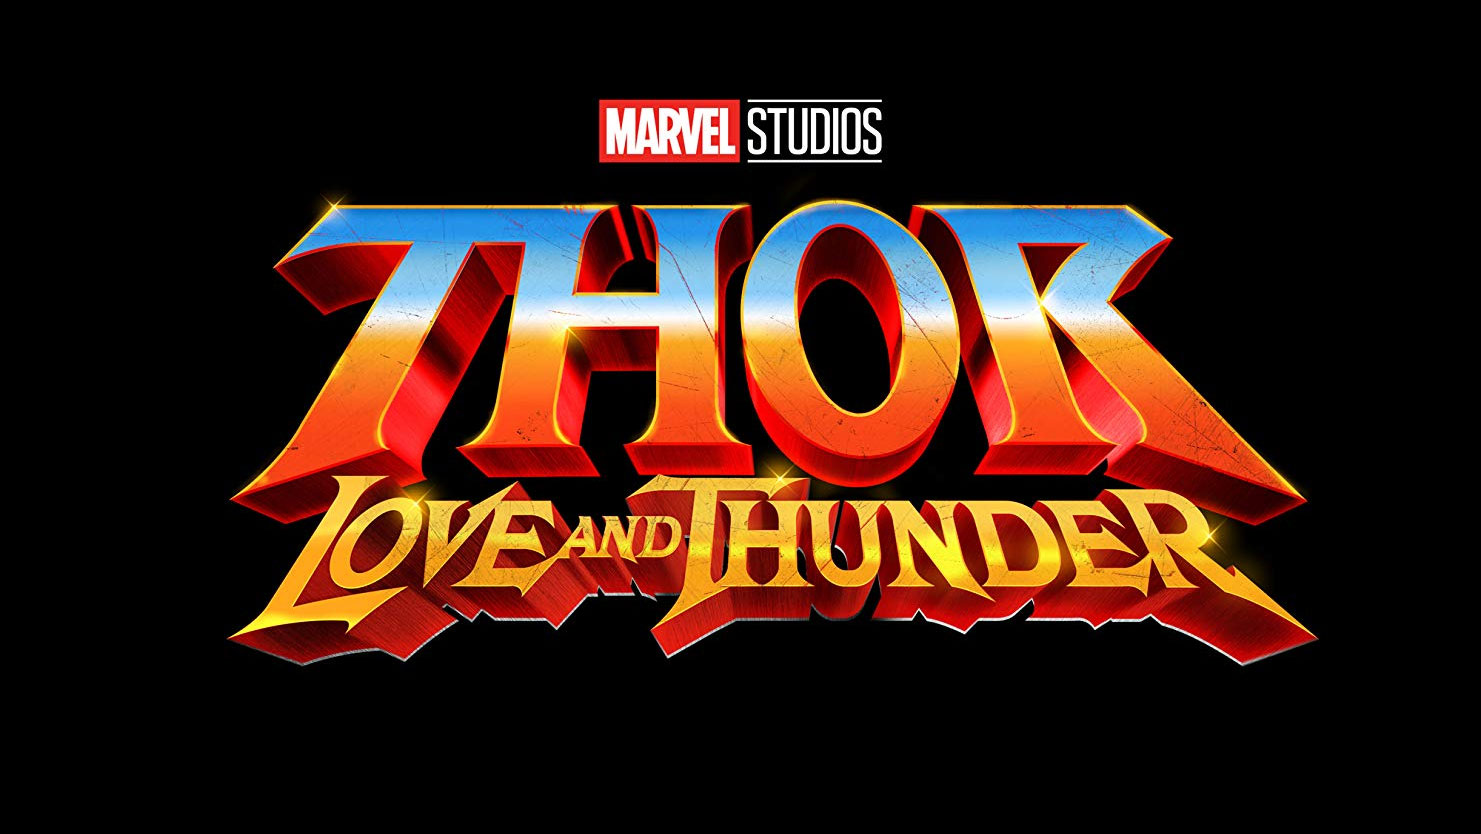 'Thor: Love and Thunder' - landscape artwork